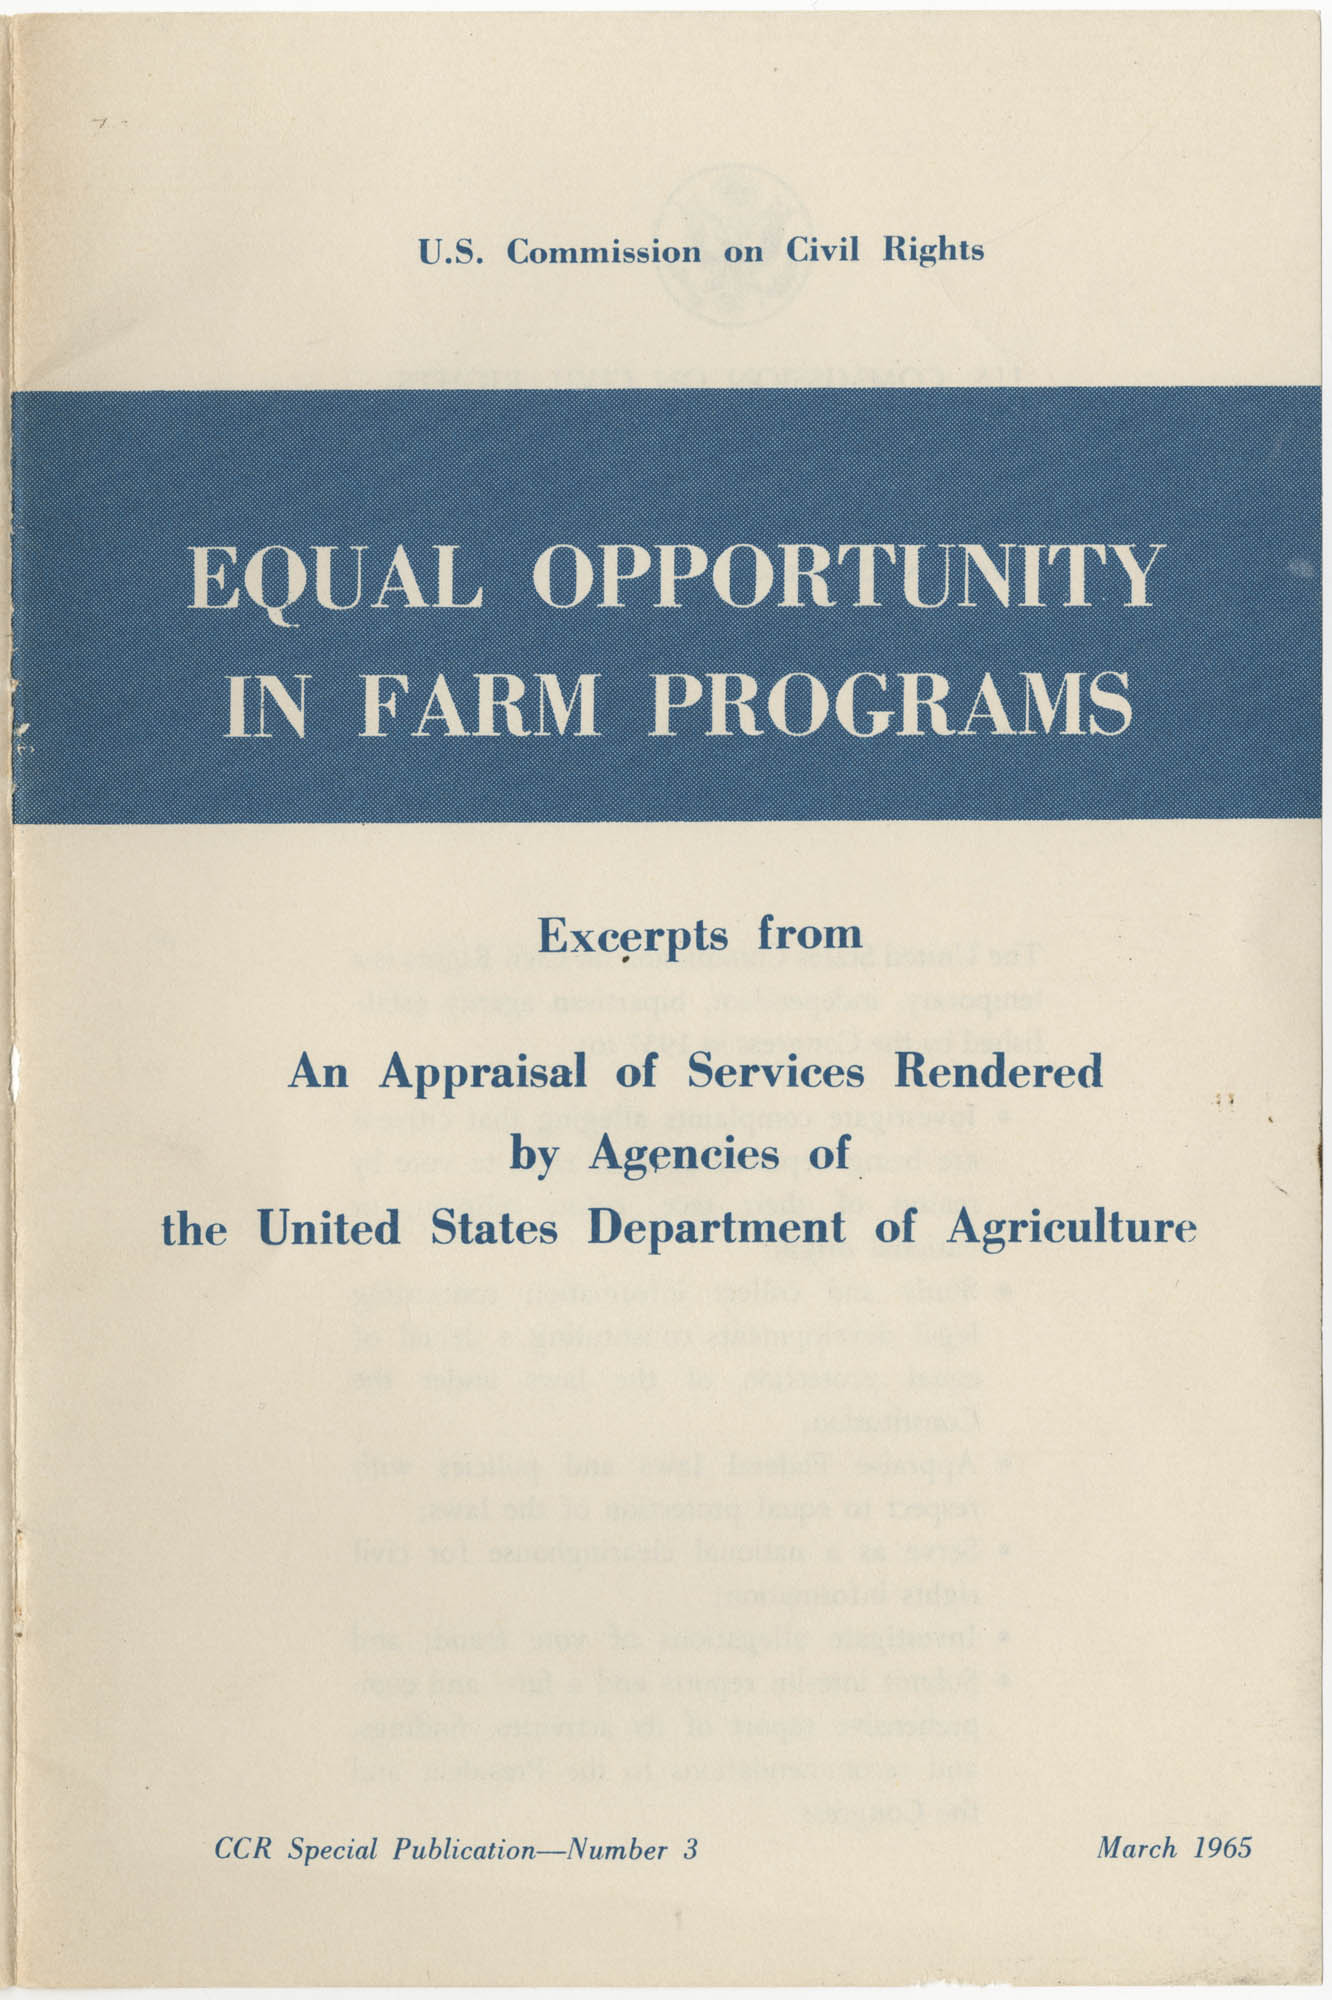 Equal Opportunity in Farm Programs